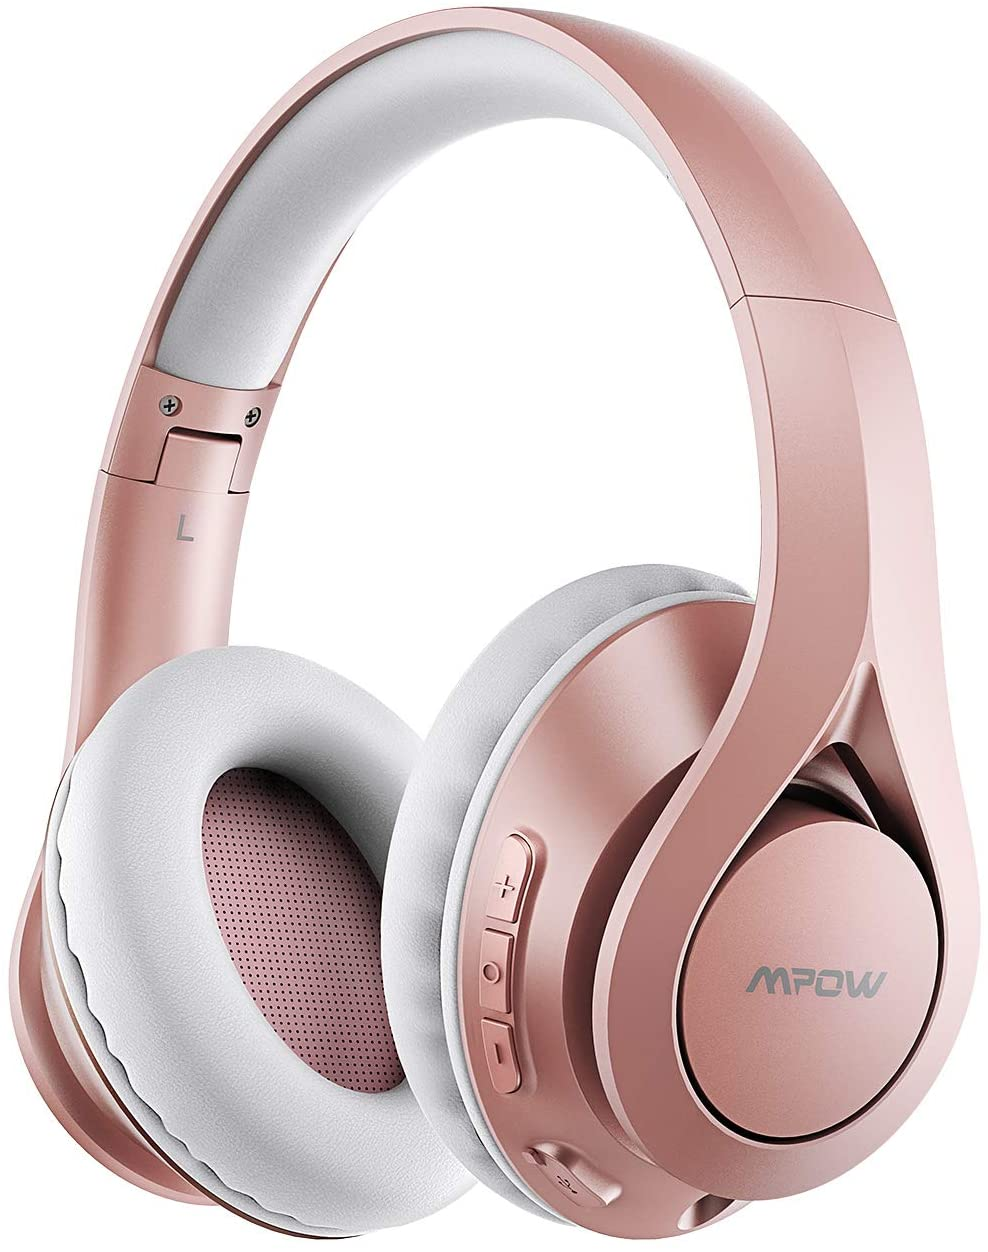 Best headphones for teens: Mpow 059 bluetooth headphones are our top overall pick.